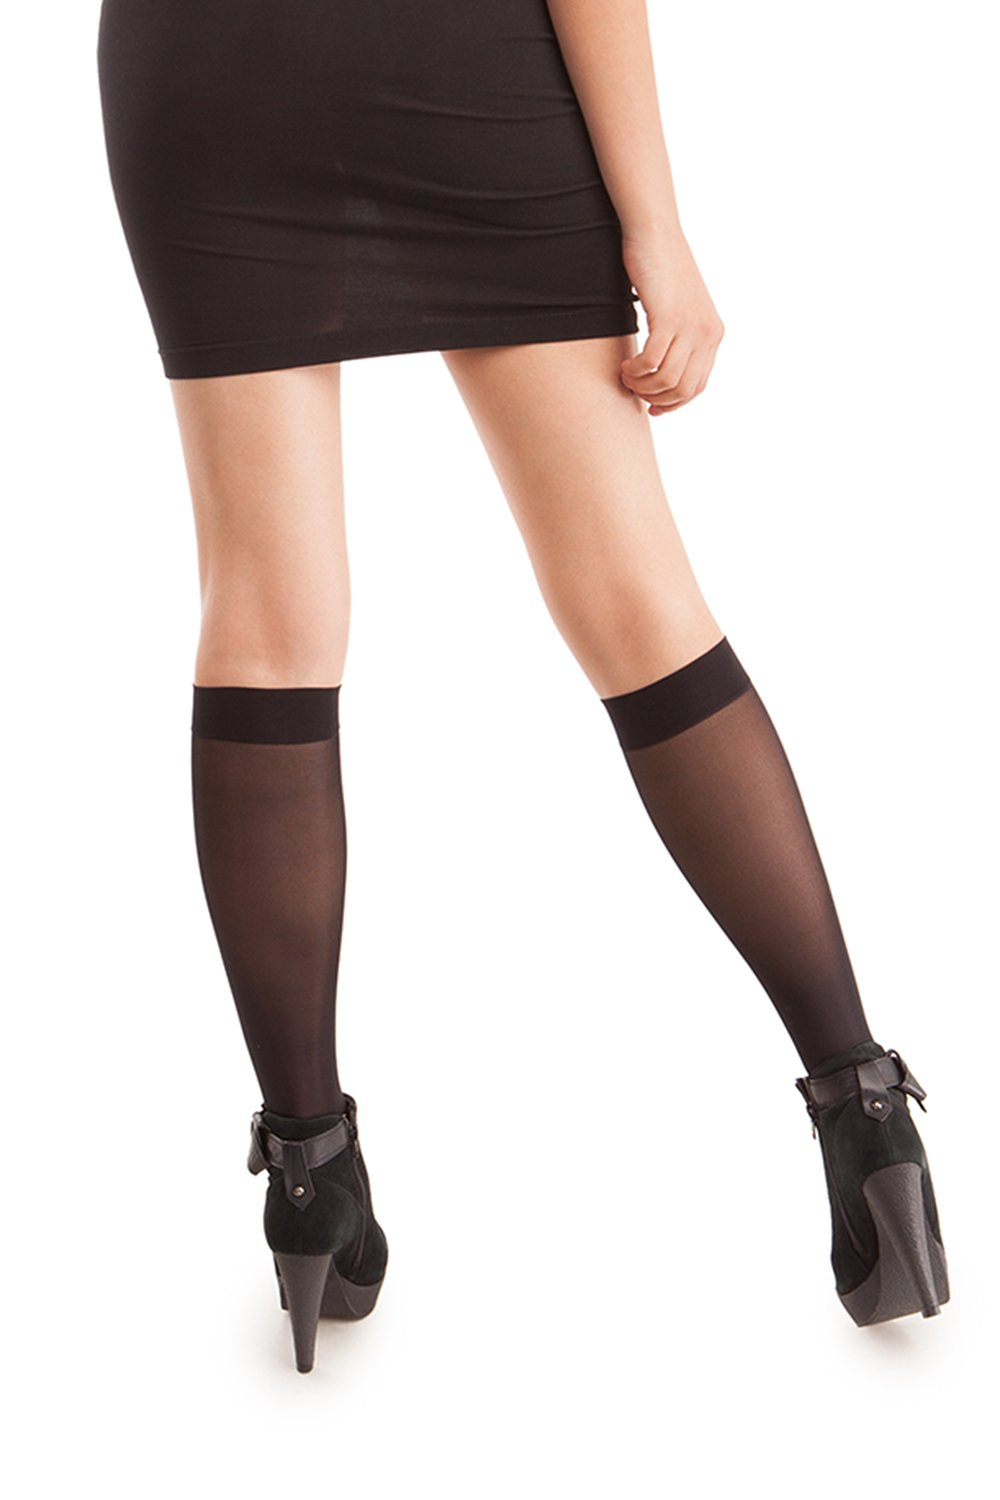 cc4bb23ca Sheer Knee Highs - Firm Compression - 23 to 30 mmHG – Gabrialla